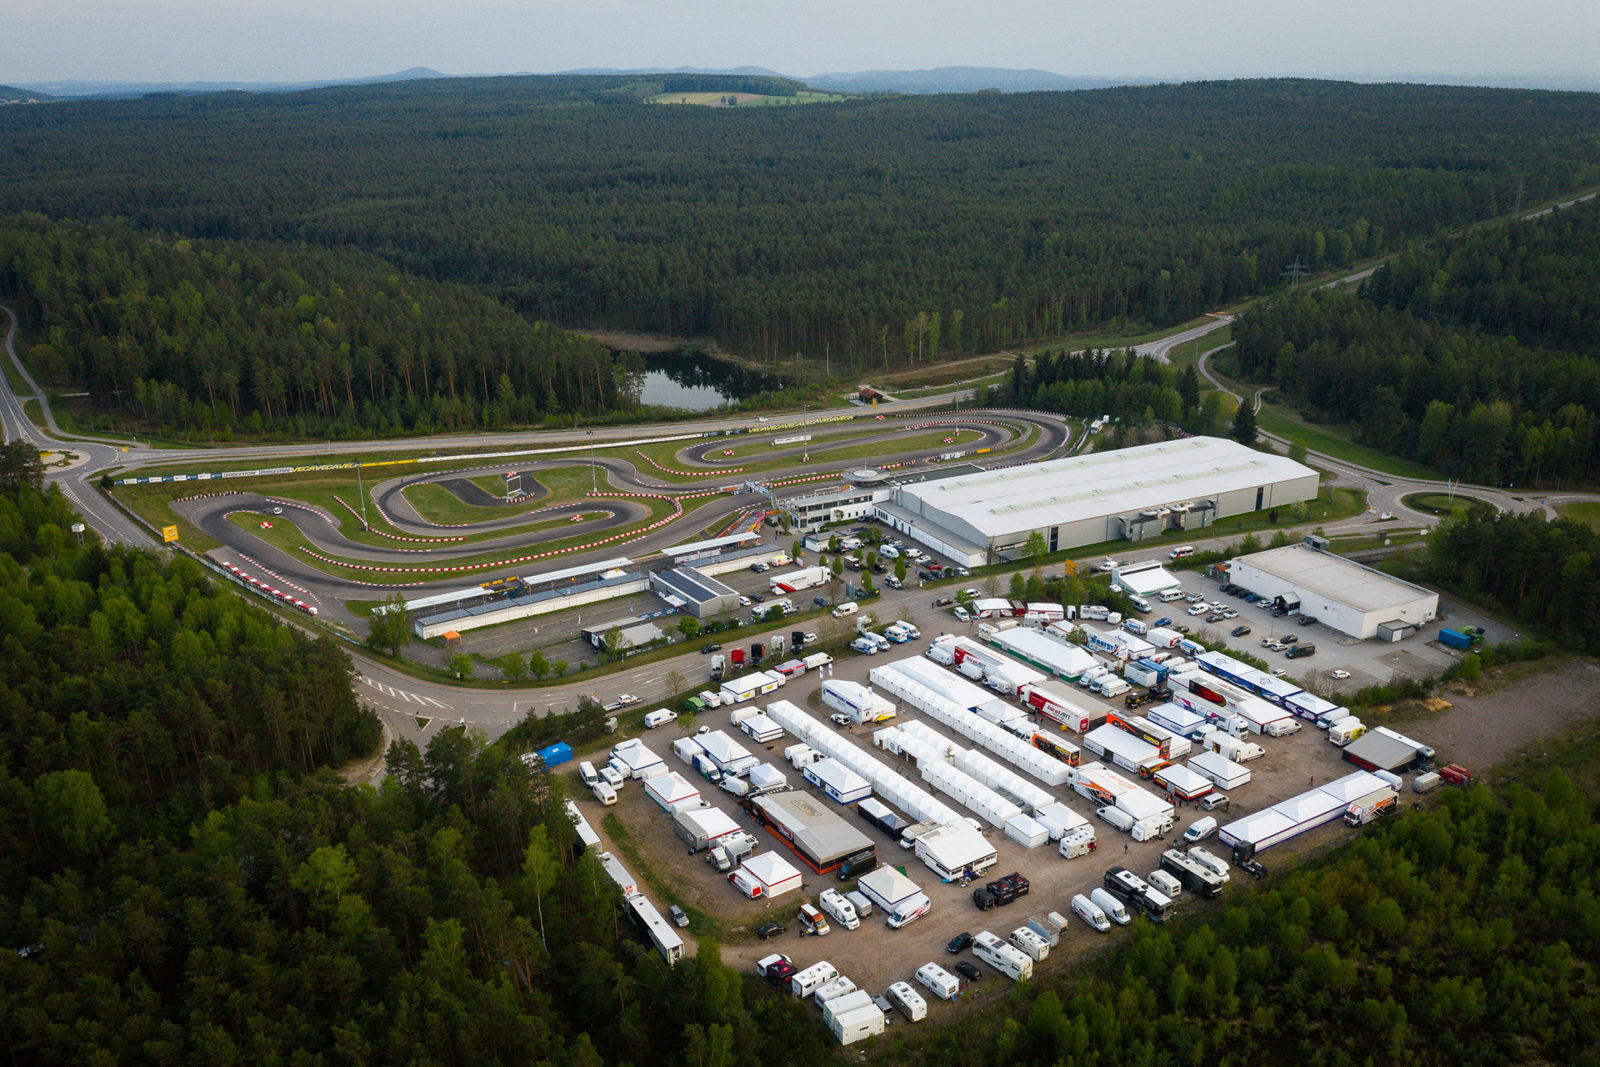 Aerial of Prokart Raceland in Wackersdorf